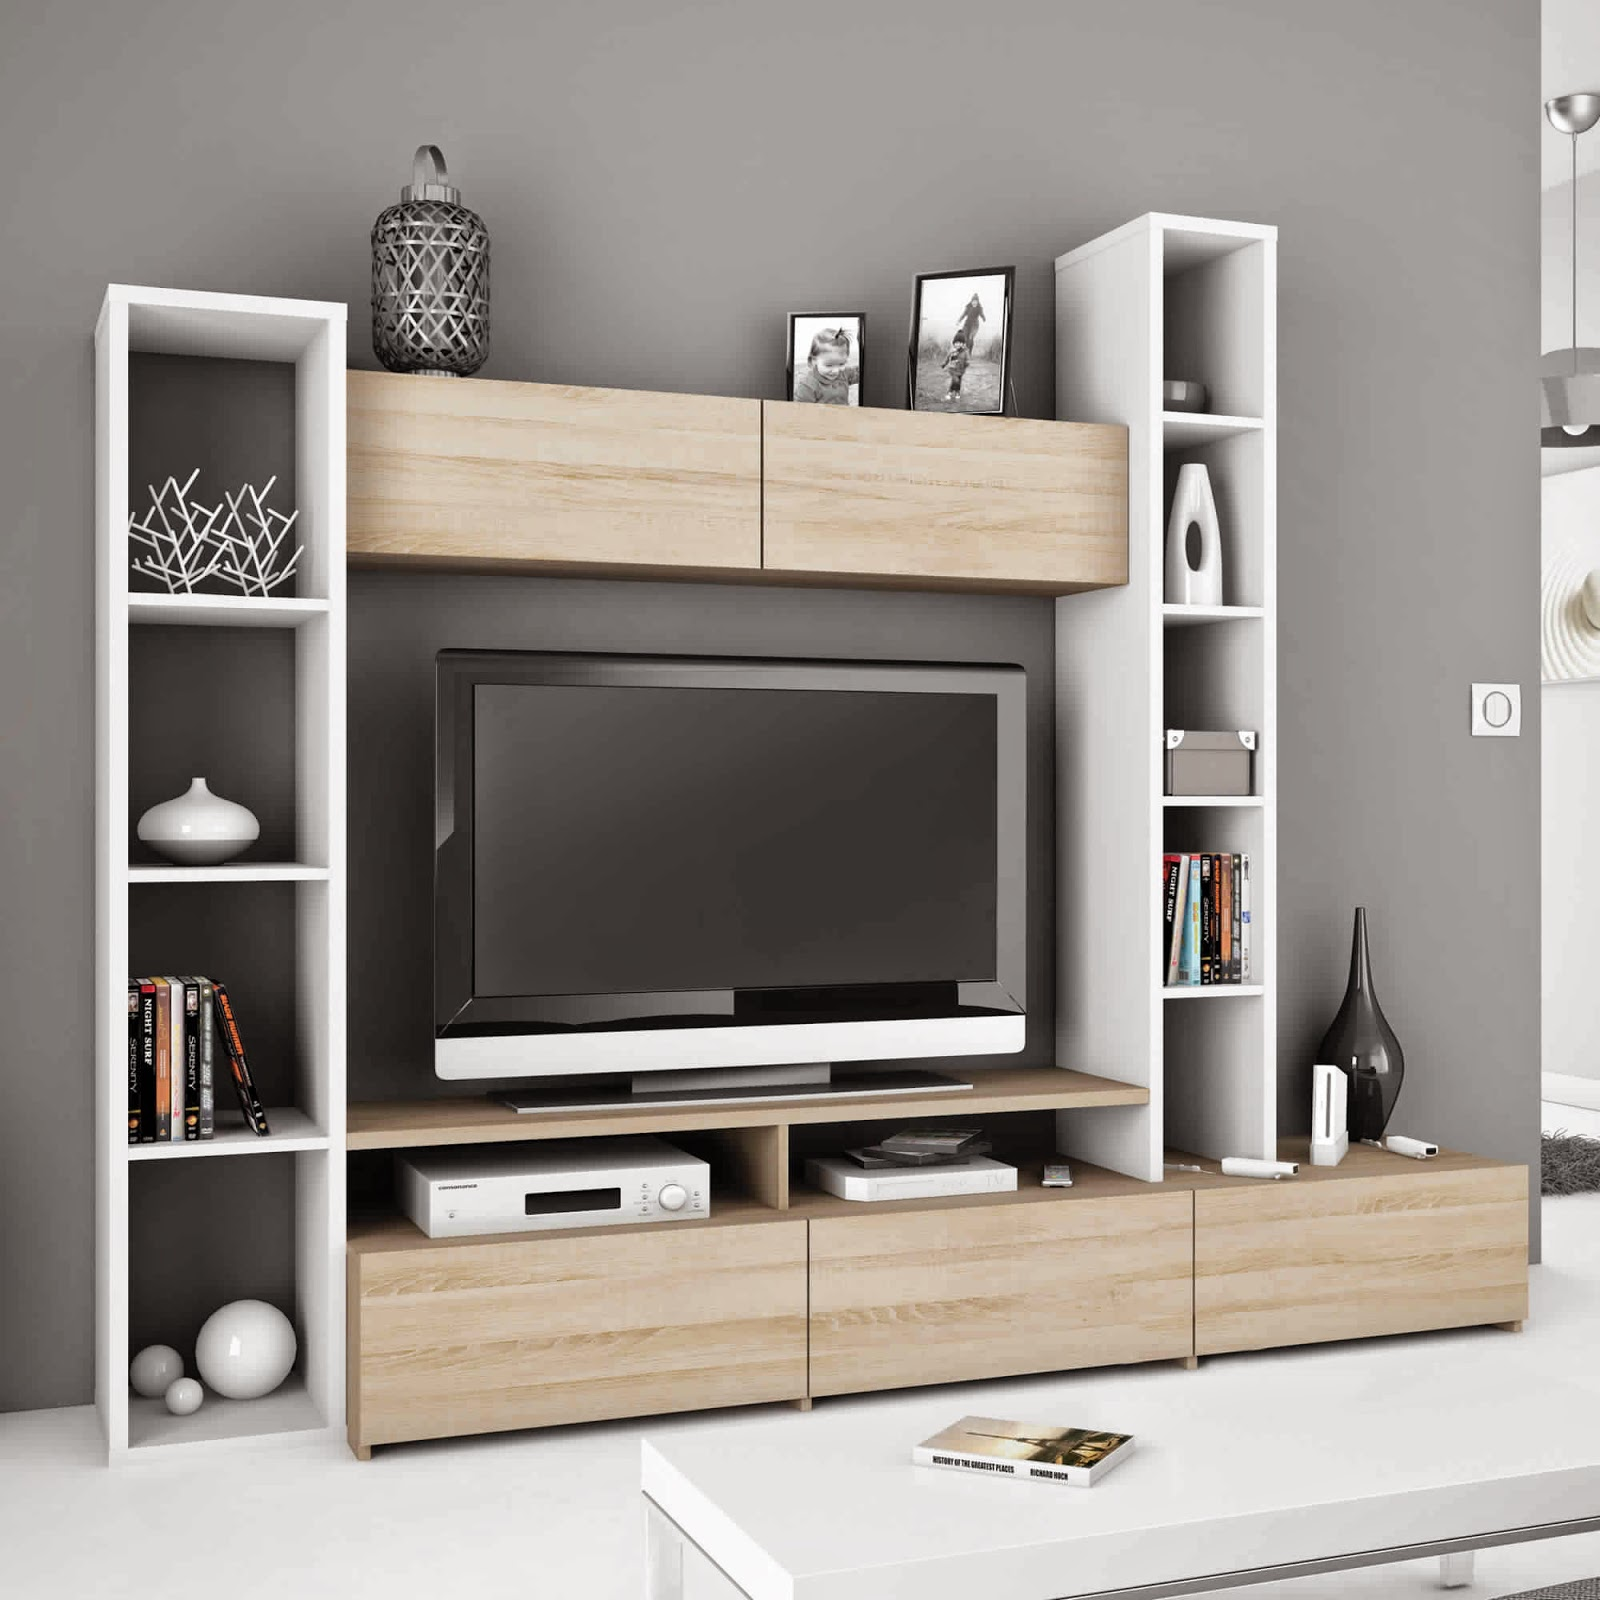 meuble tv conforama noir et blanc meuble tv conforama blanc meuble tv cm topic coloris blanc. Black Bedroom Furniture Sets. Home Design Ideas